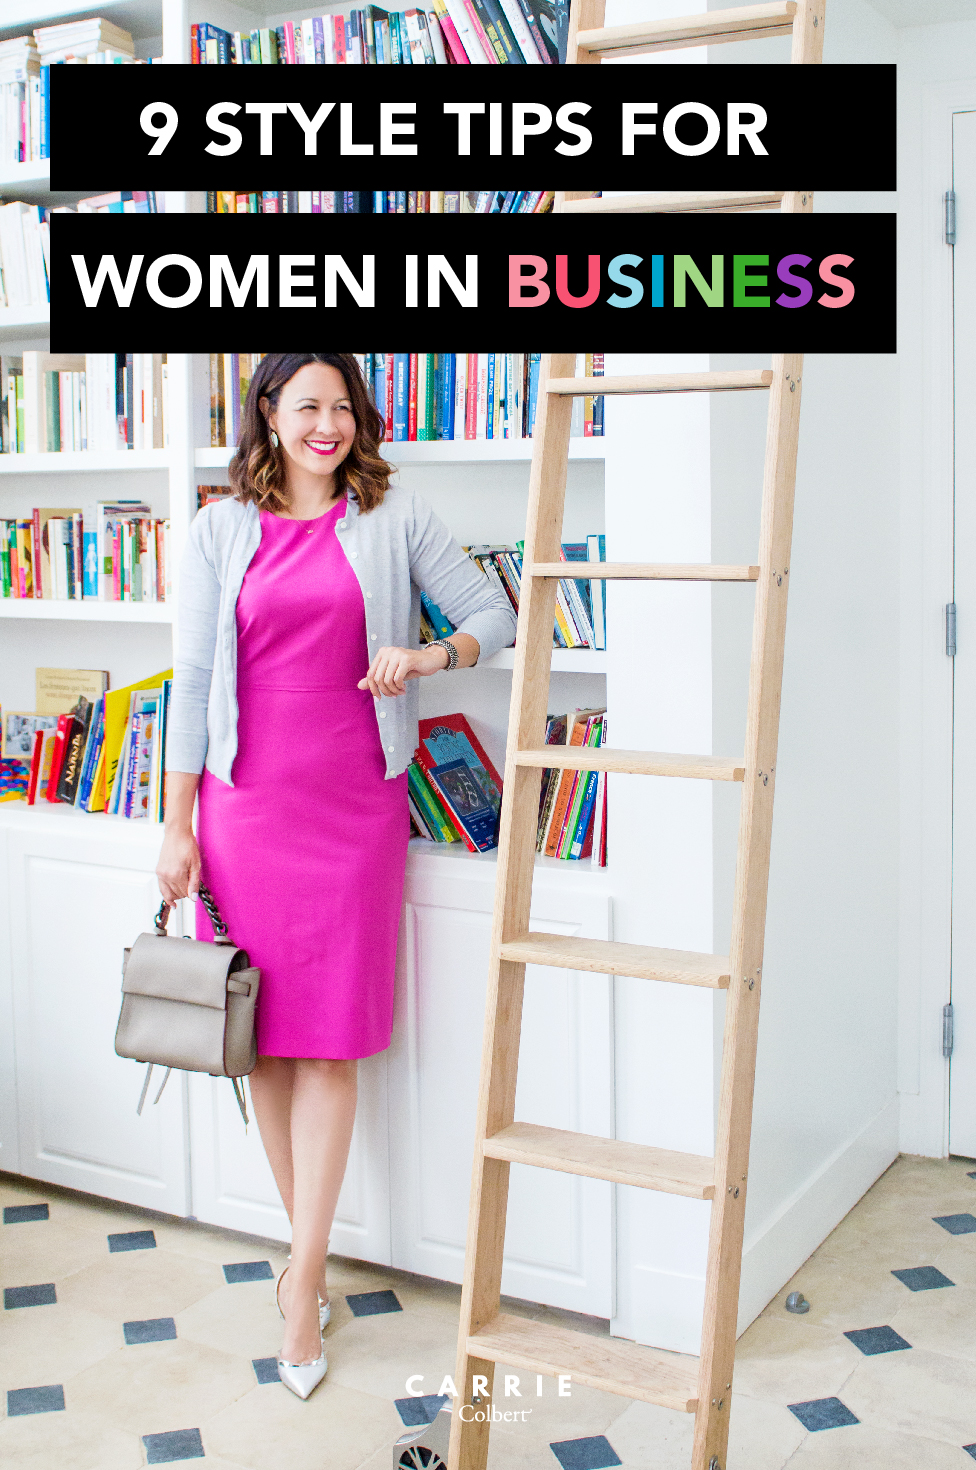 9 Style Tips for Women in Business - Carrie Colbert